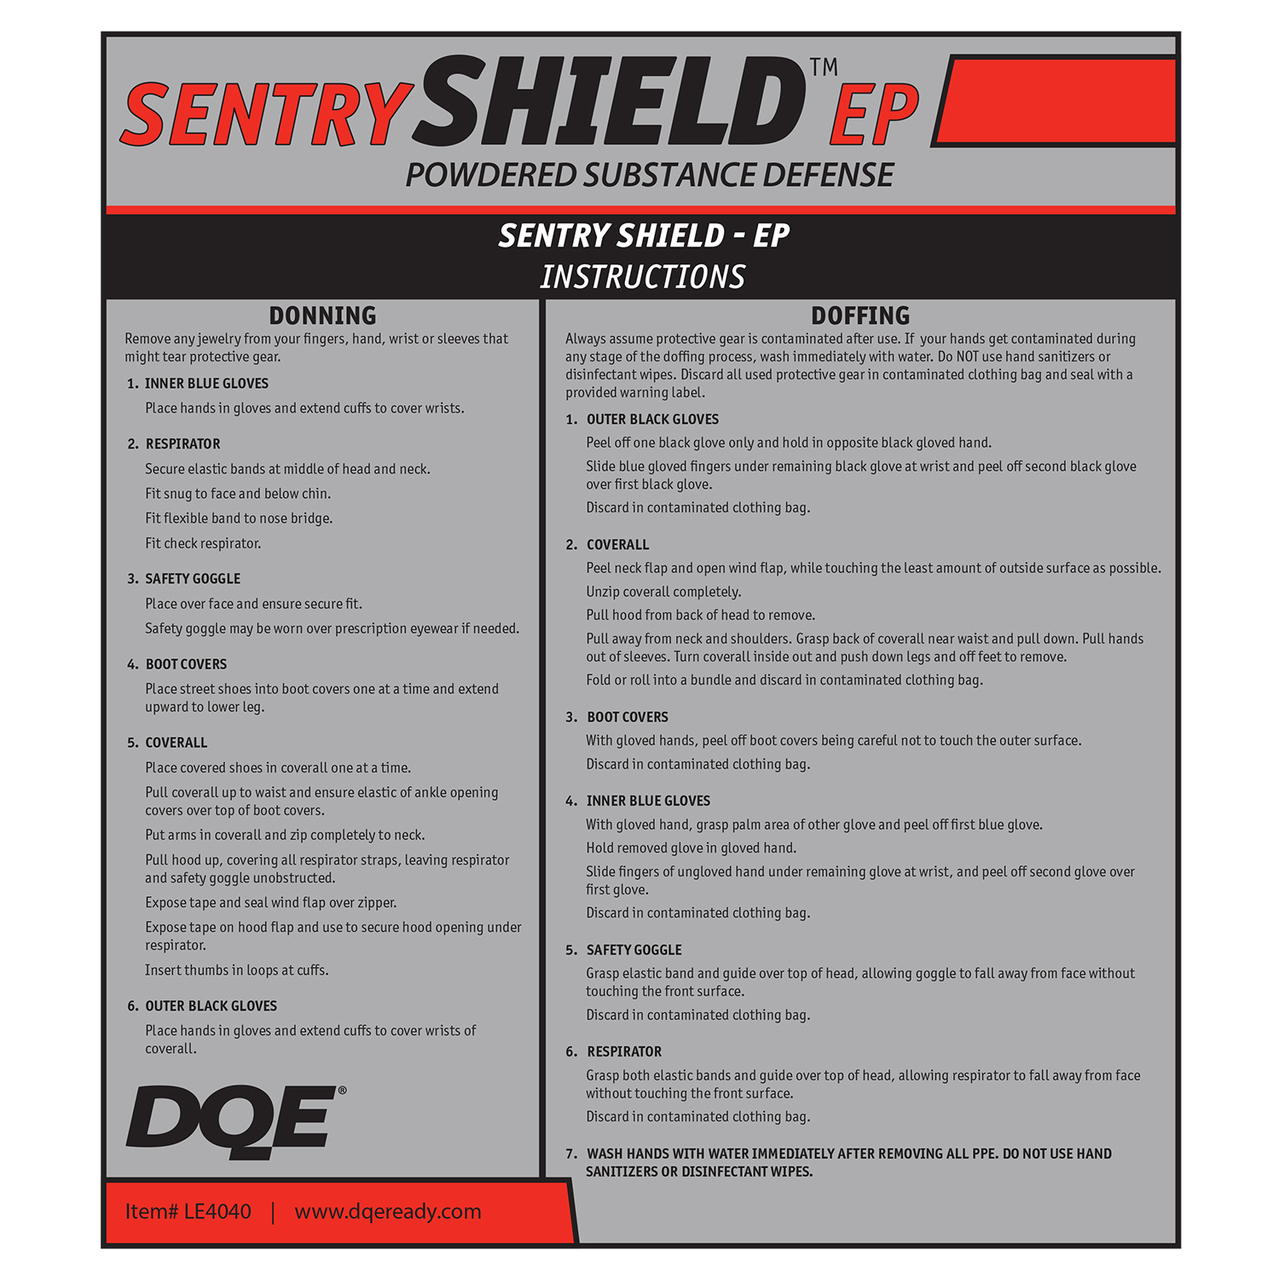 Sentry Shield EP - Powdered Substance Defense Kit